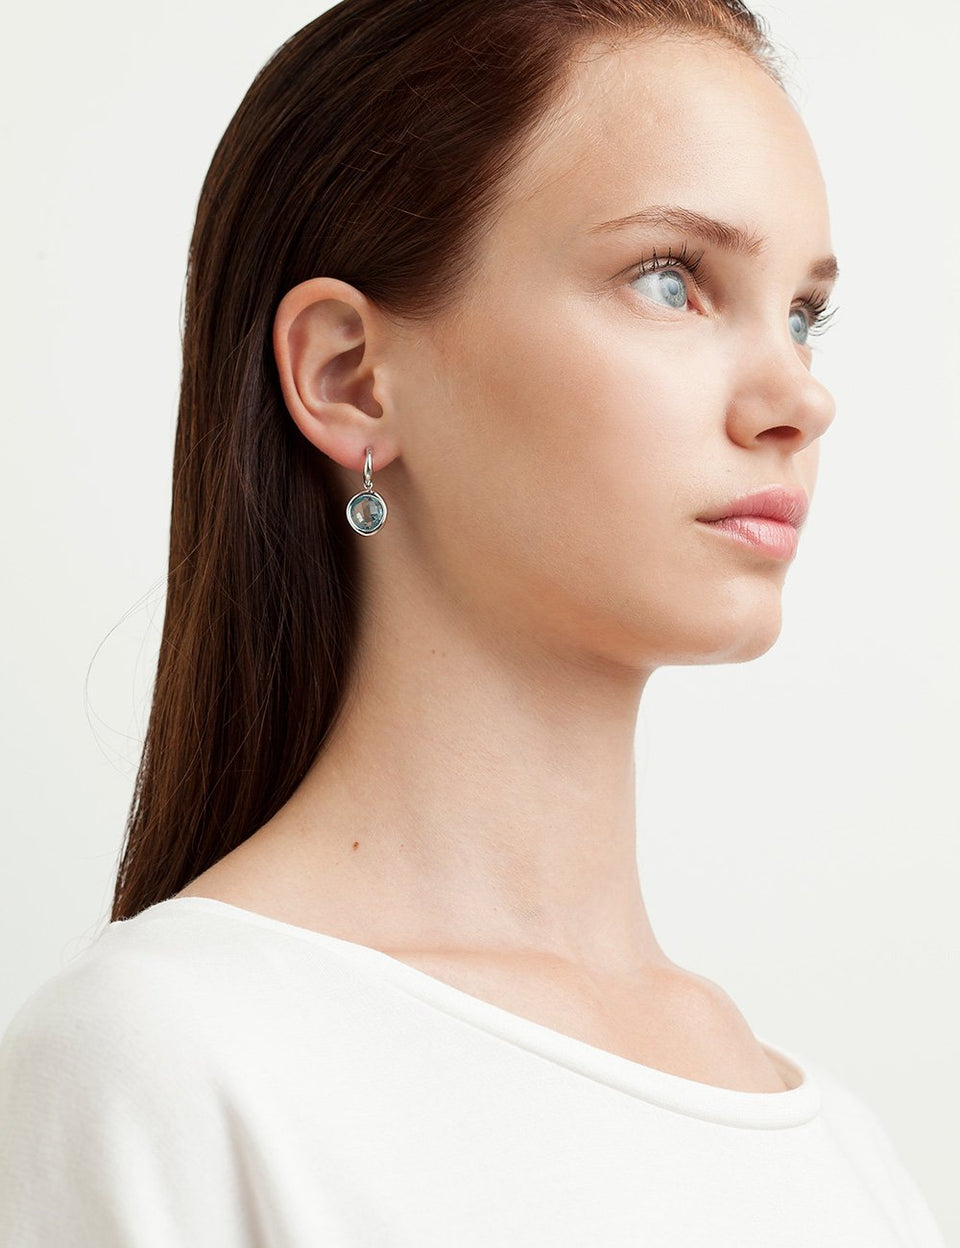 Topaz Earrings in white gold handmade by Jordi Rosich by Roosik & Co